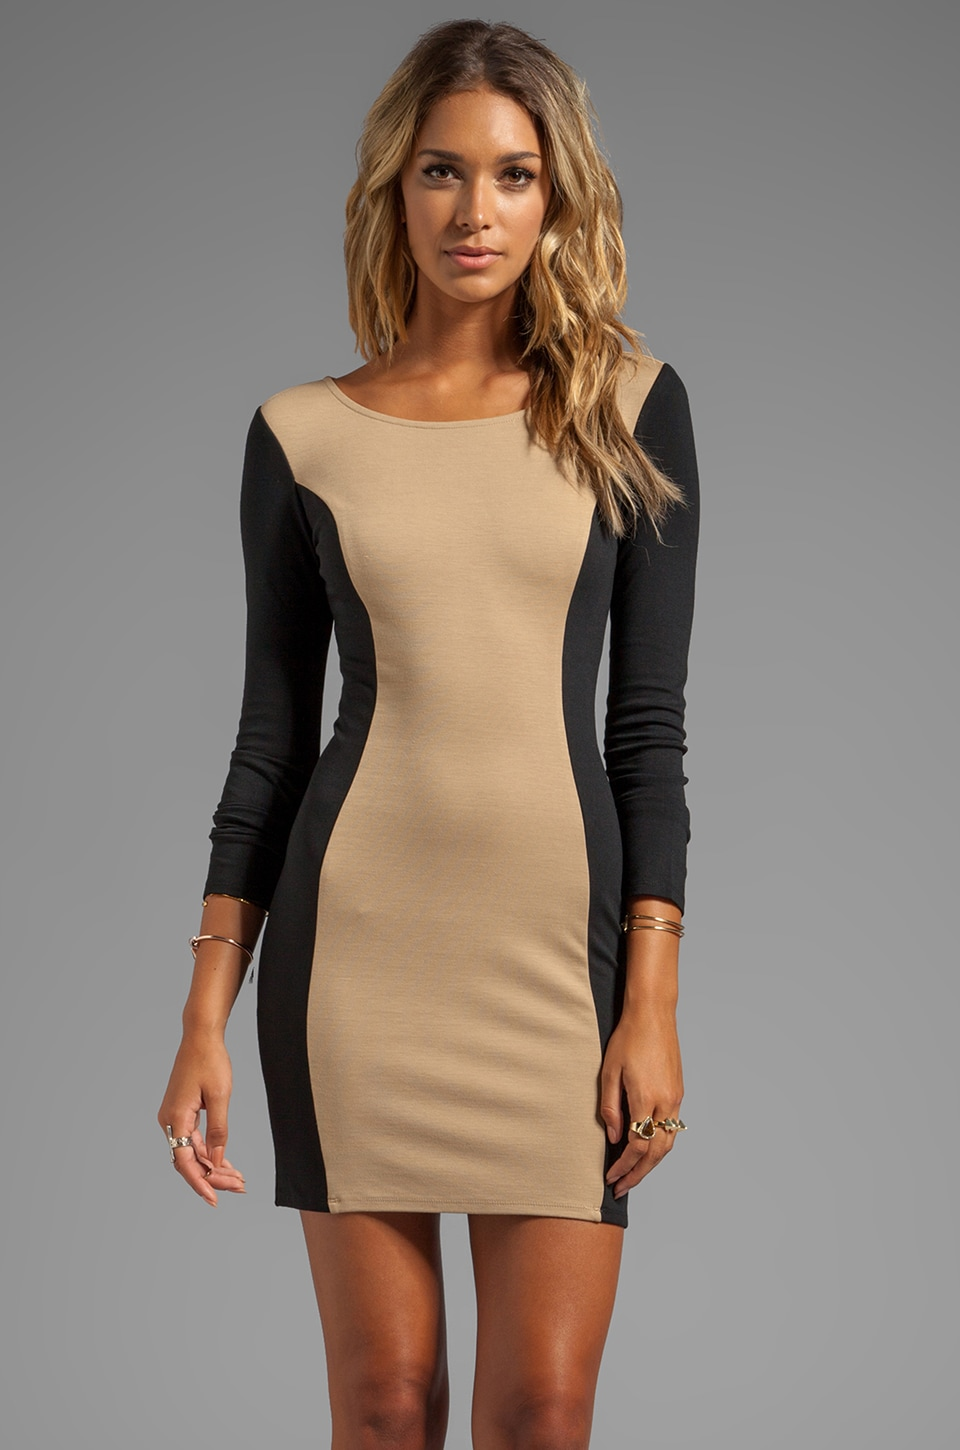 Ella Moss Naomi Dress in Camel